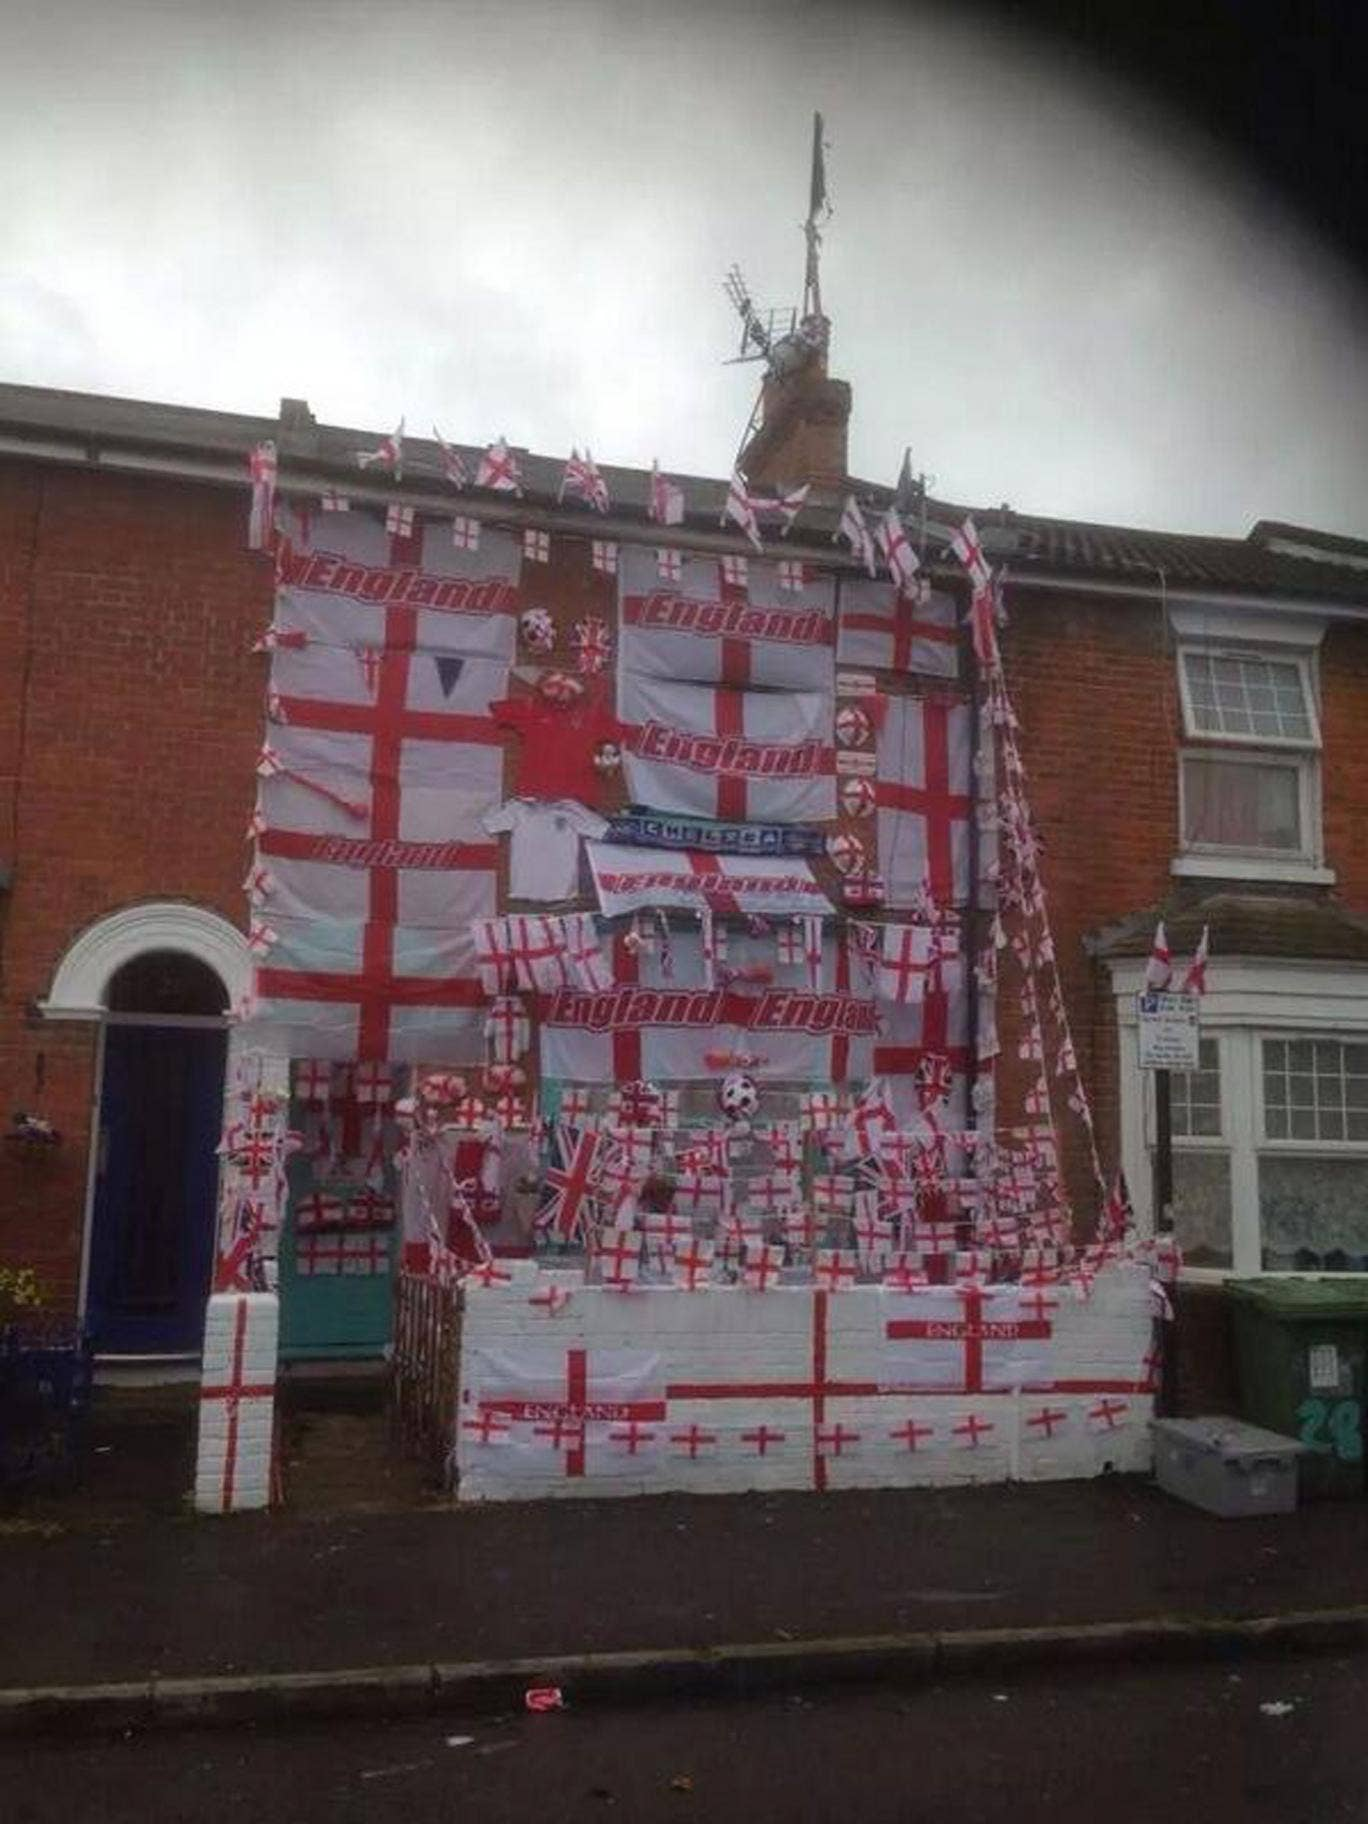 The England house in all its red and white glory